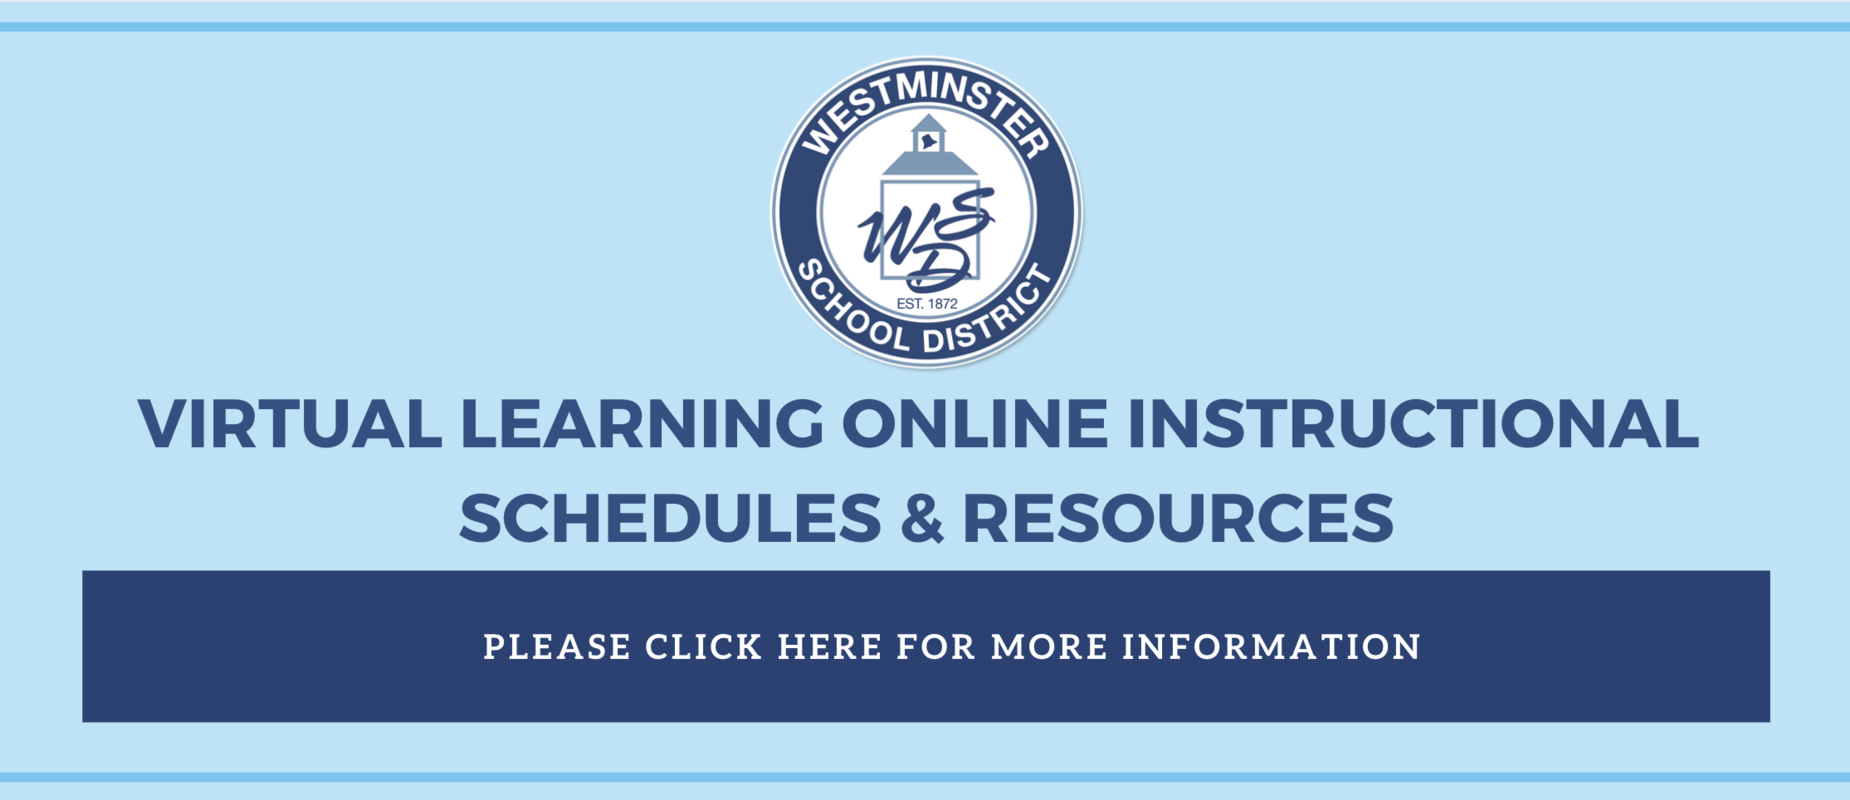 Virtual Learning Online Instructional Schedules and Resources